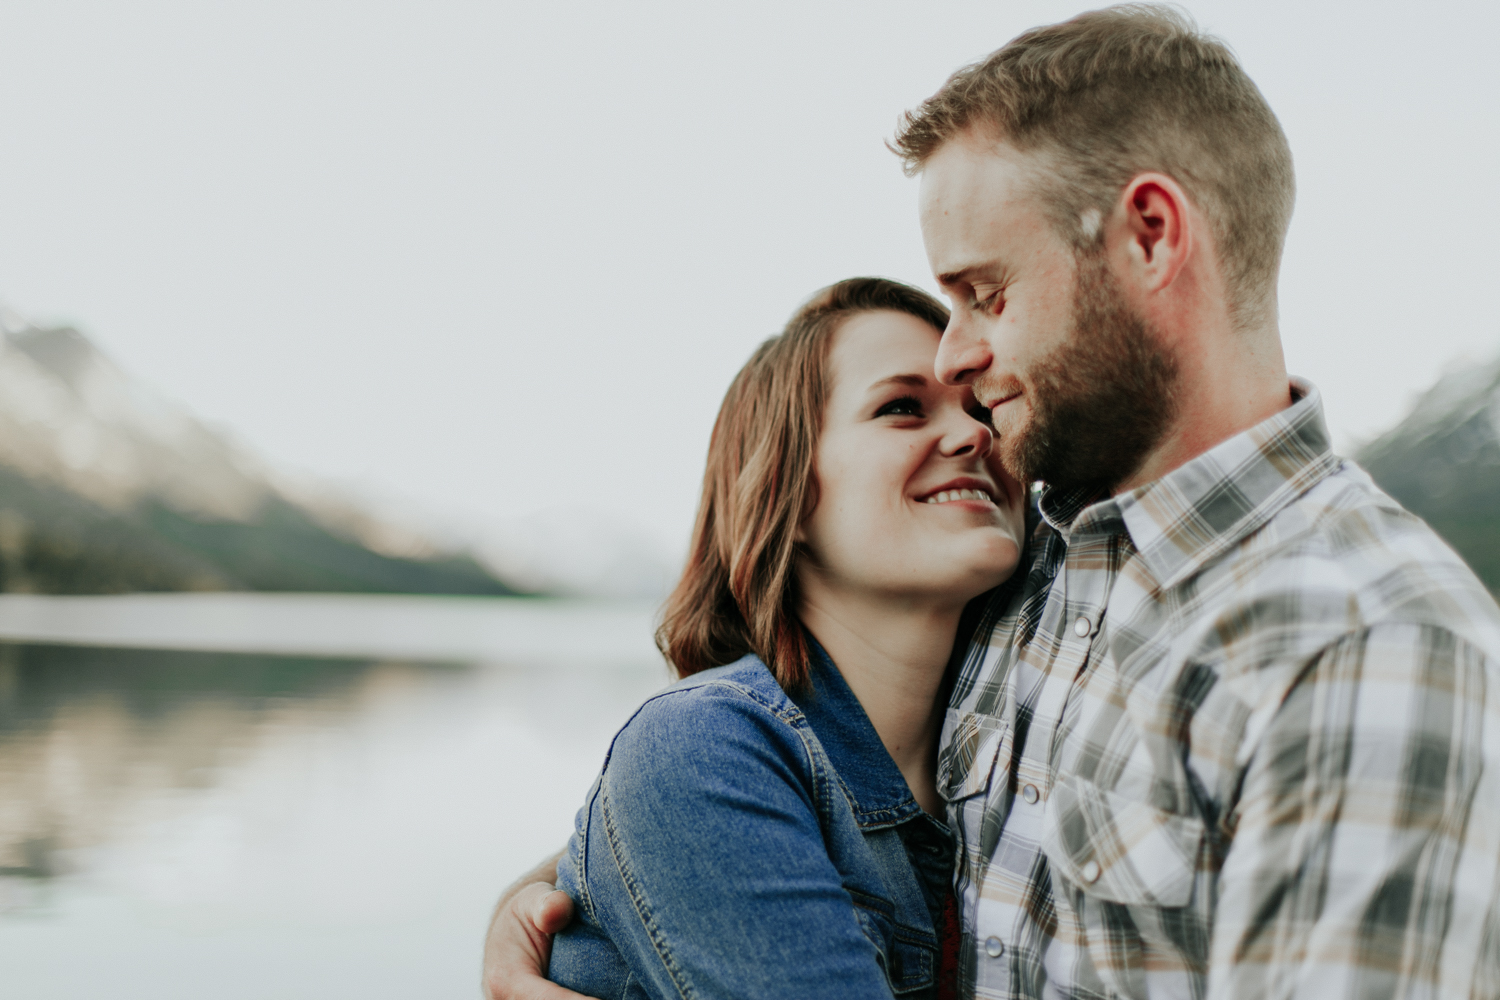 waterton-photographer-love-and-be-loved-photograph-mountain-engagement-luc-megan-picture-iamge-photo-44.jpg